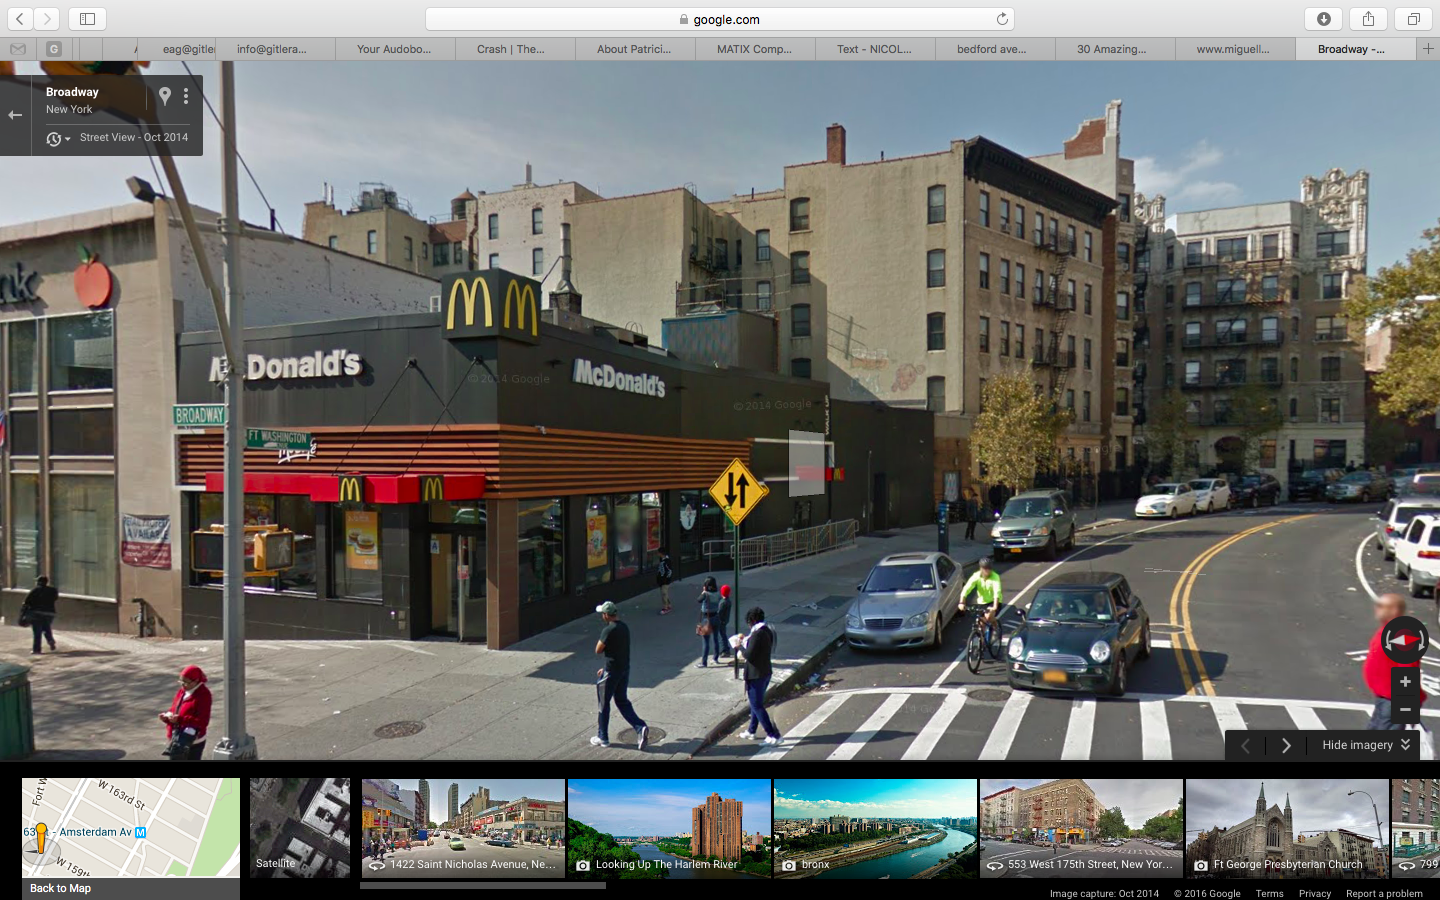 fort washington ave - 159 and broadway 3/3